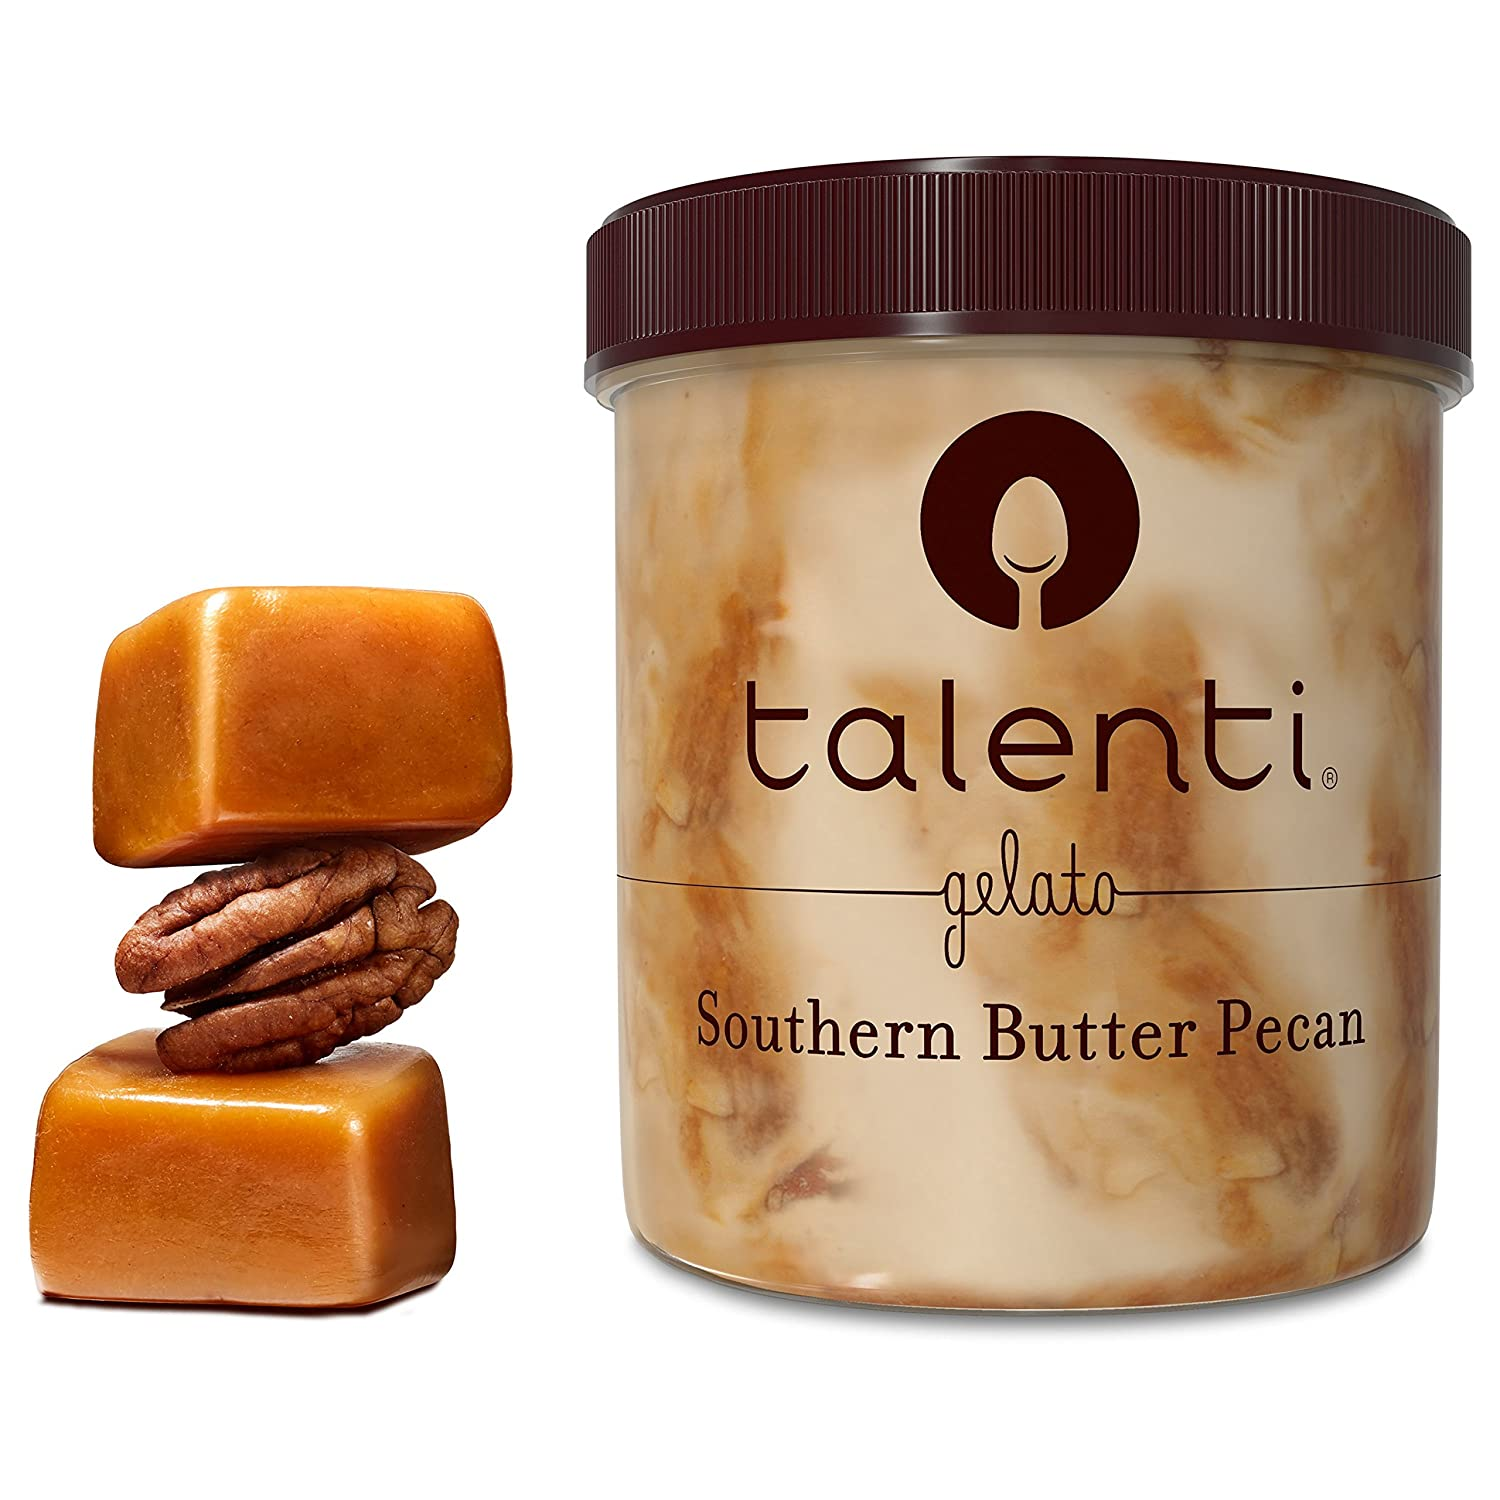 Talenti Ice Cream, Southern Butter Pecan 1 pint (Frozen): Amazon.com: Grocery & Gourmet Food